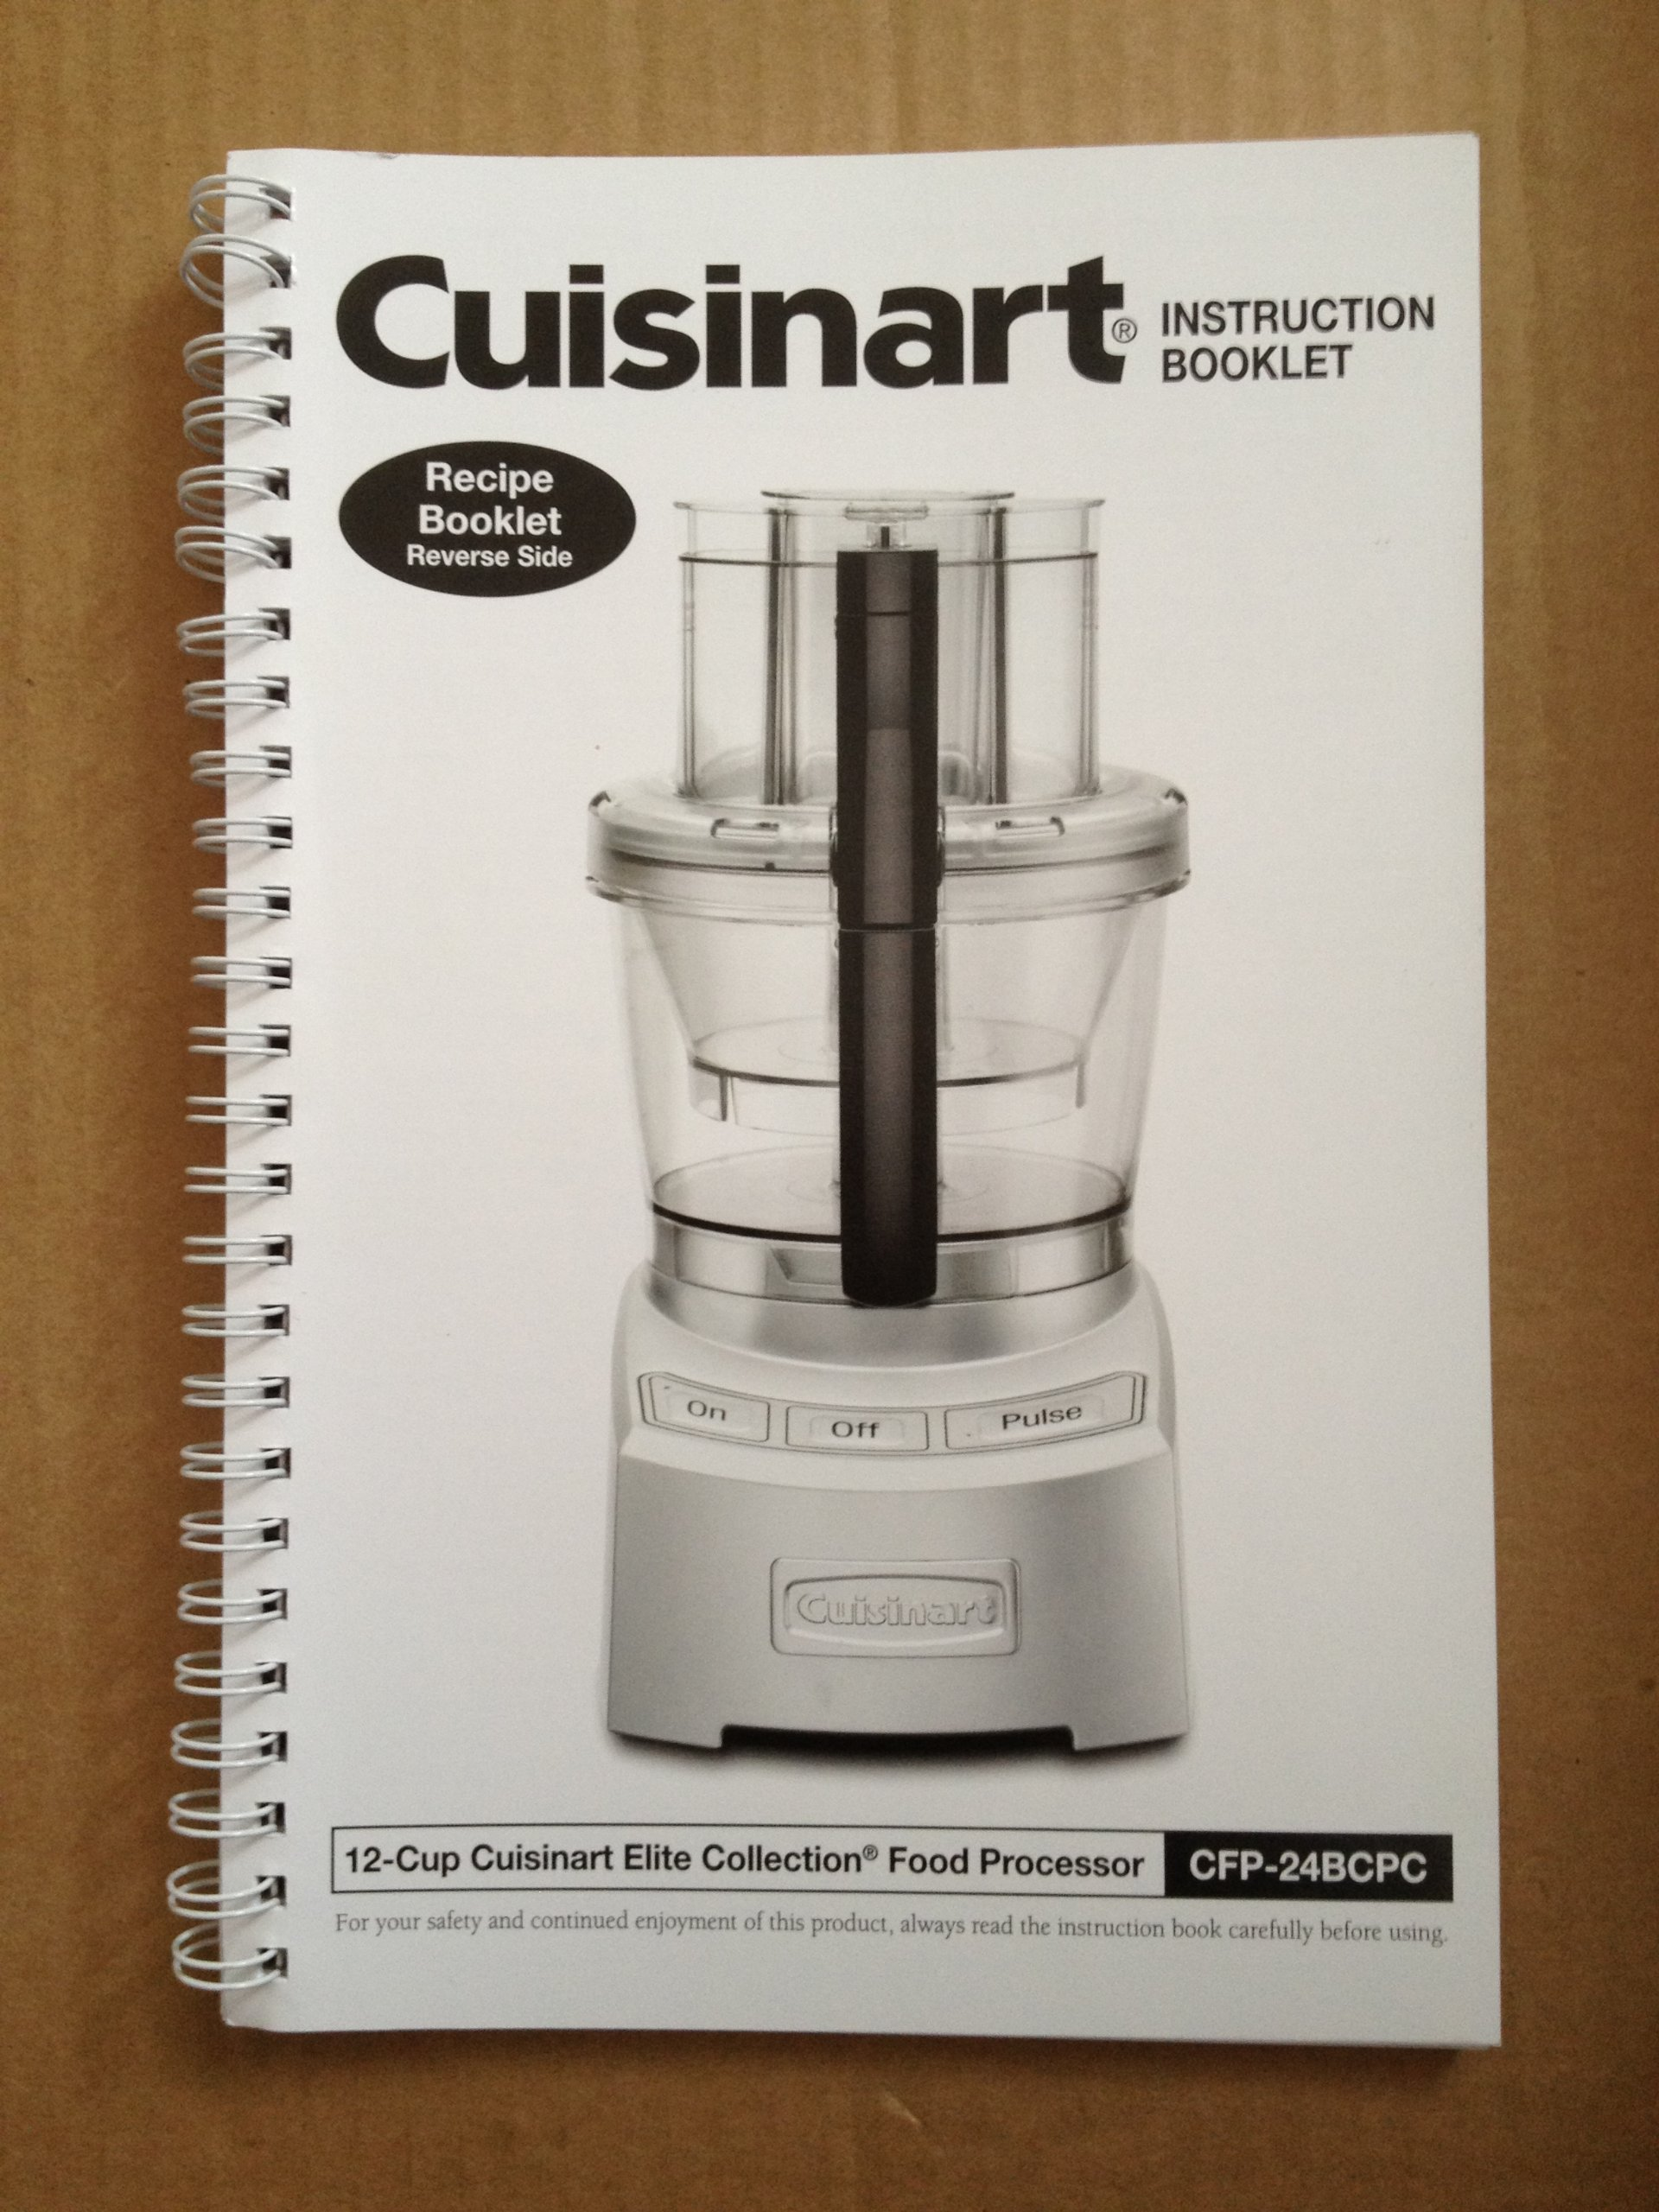 Cuisinart elite collection recipe booklet for 12 cup cfp 24bcpc cuisinart elite collection recipe booklet for 12 cup cfp 24bcpc food processor and instruction booklet cuisinart amazon books forumfinder Image collections